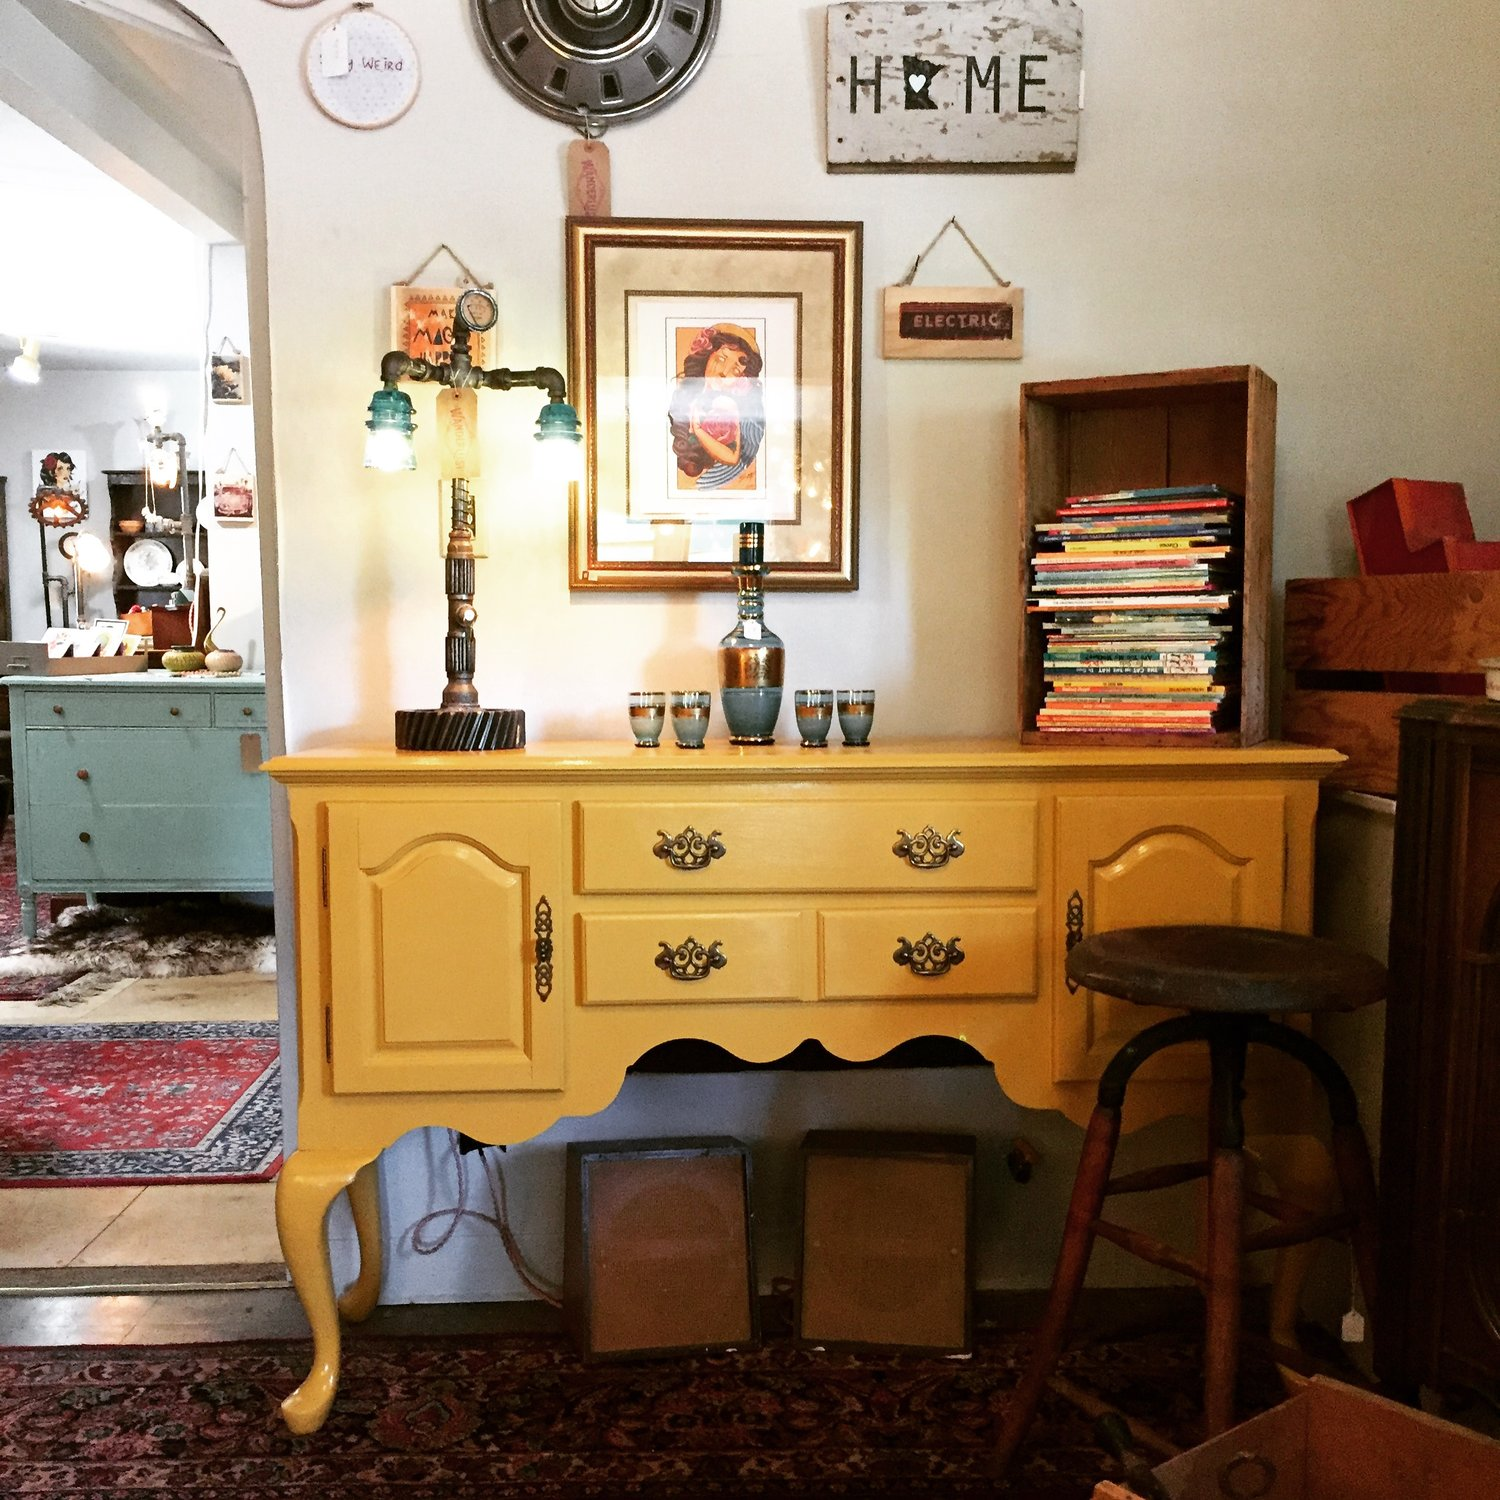 About Our Antique and Vintage Furniture - About Our Antique And Vintage Furniture — Wanderlust Vintage Market